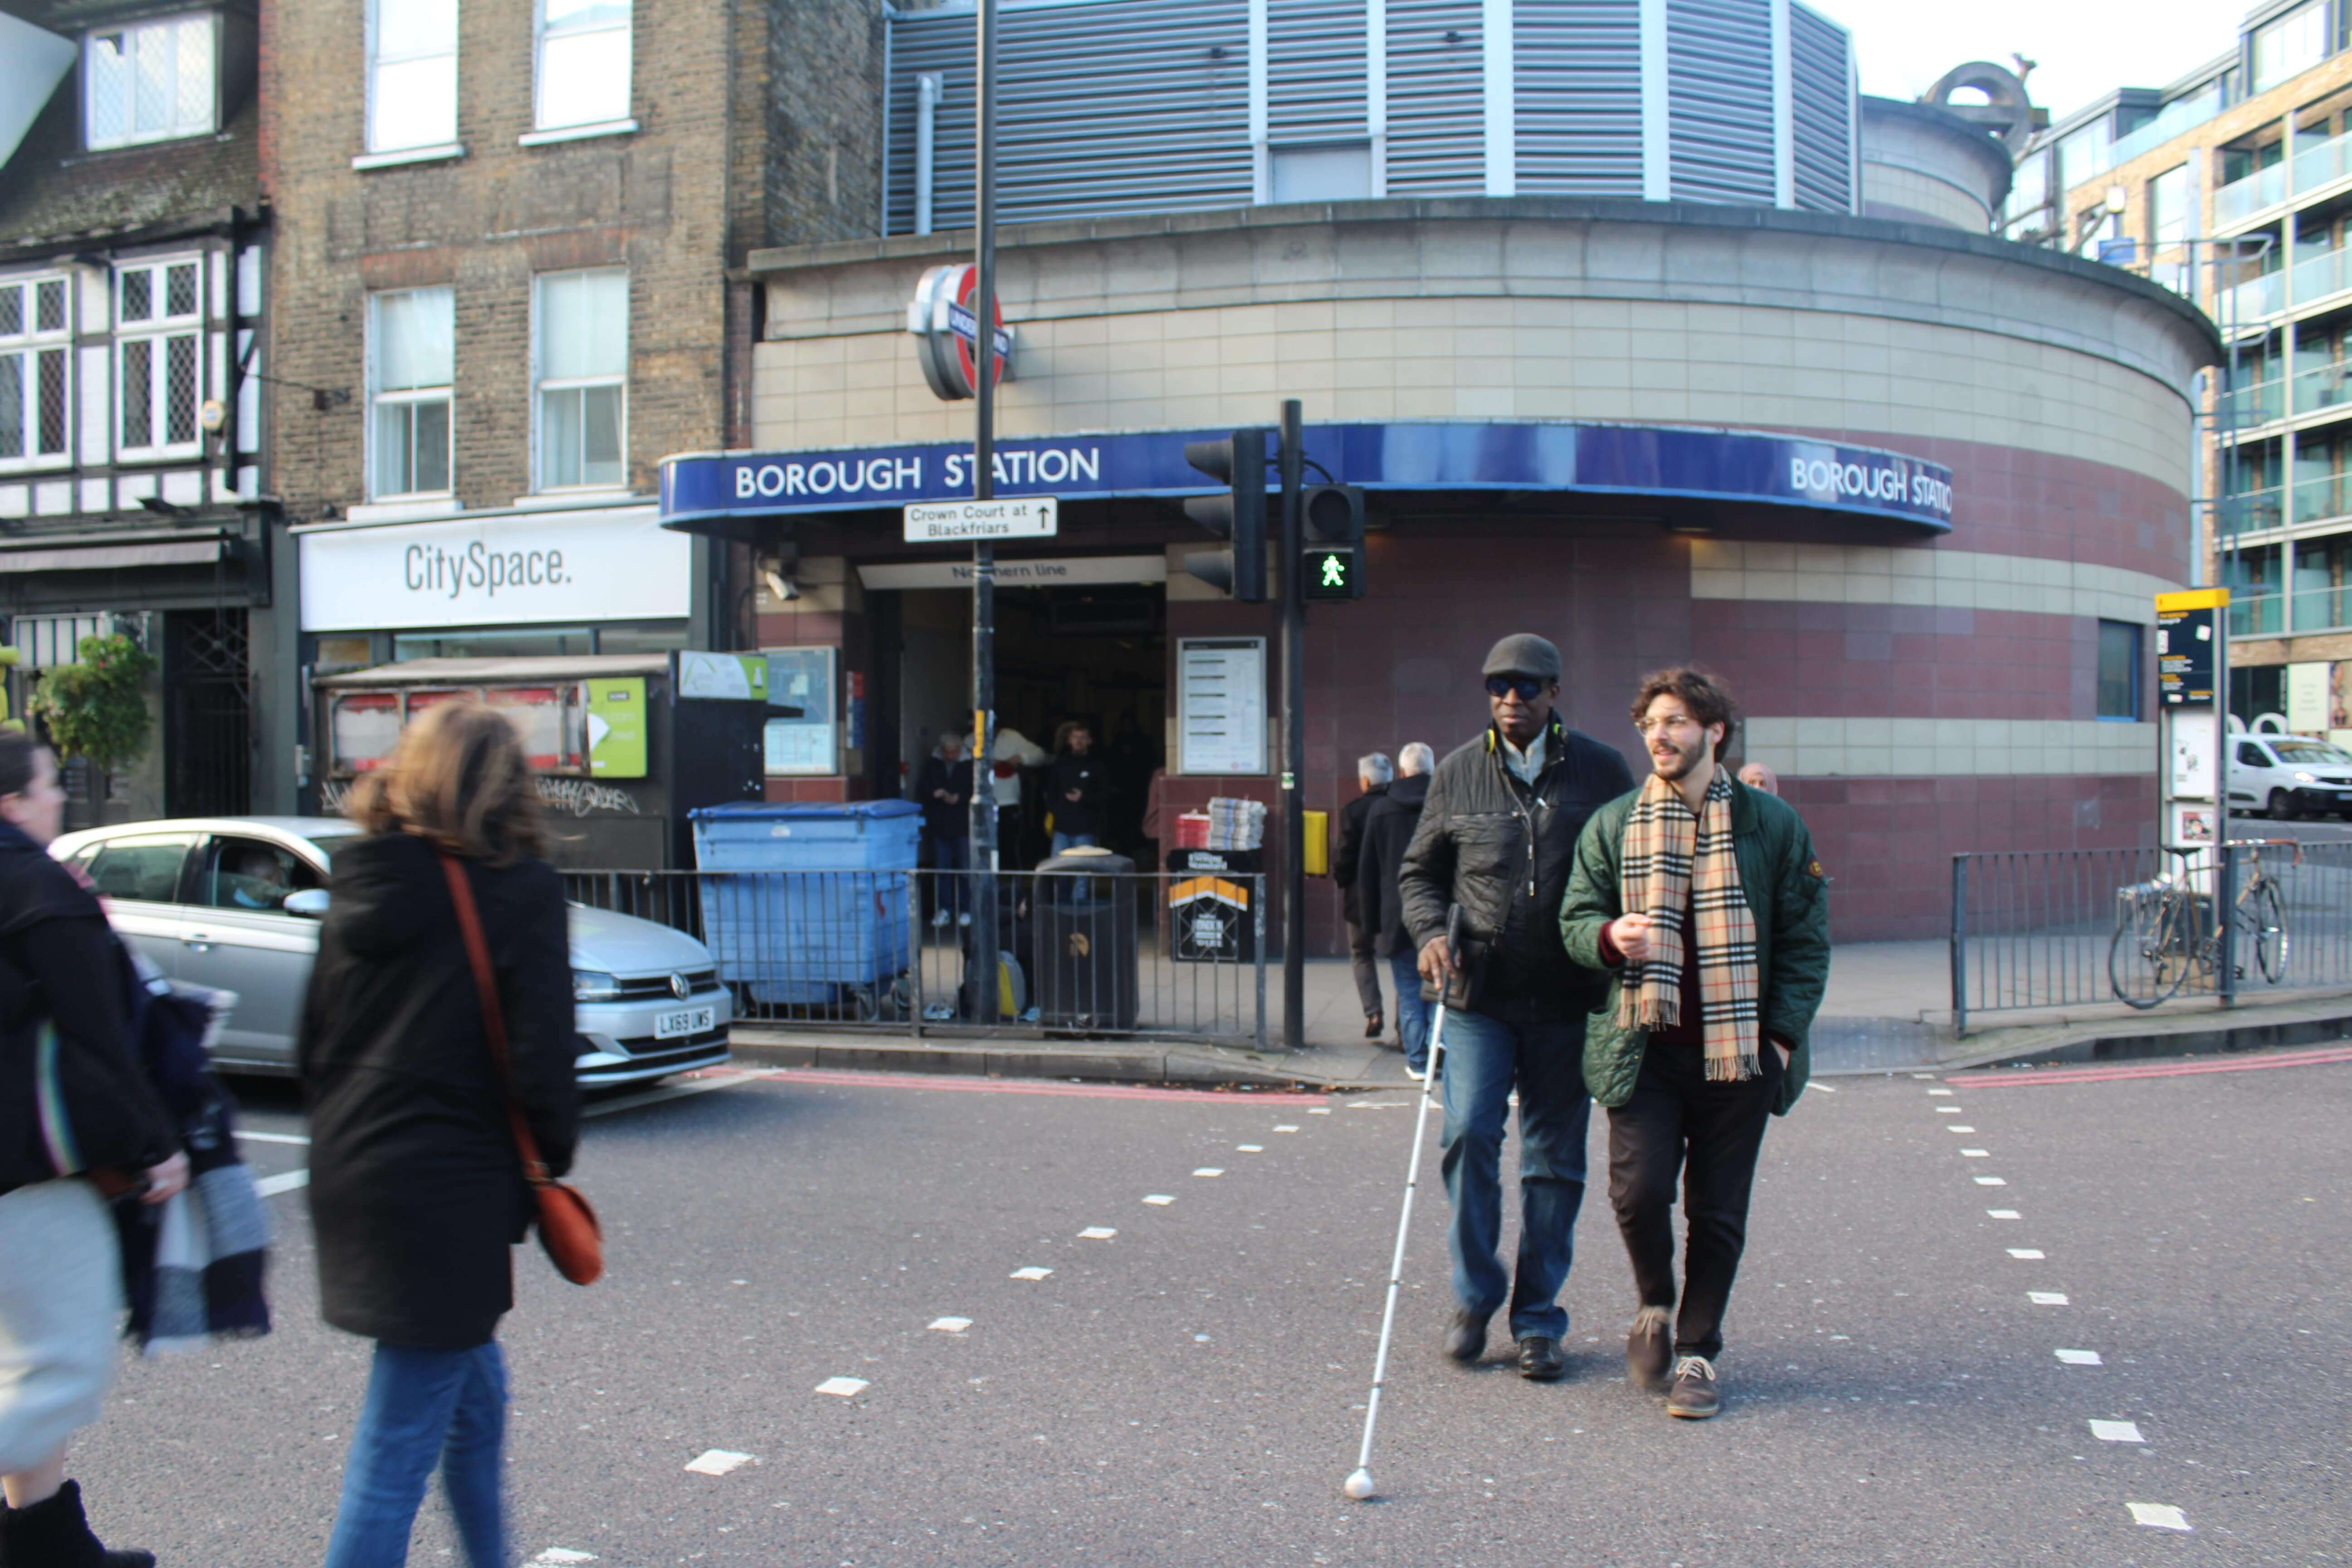 Tube station - the first step of travel visually impaired person with volunteer